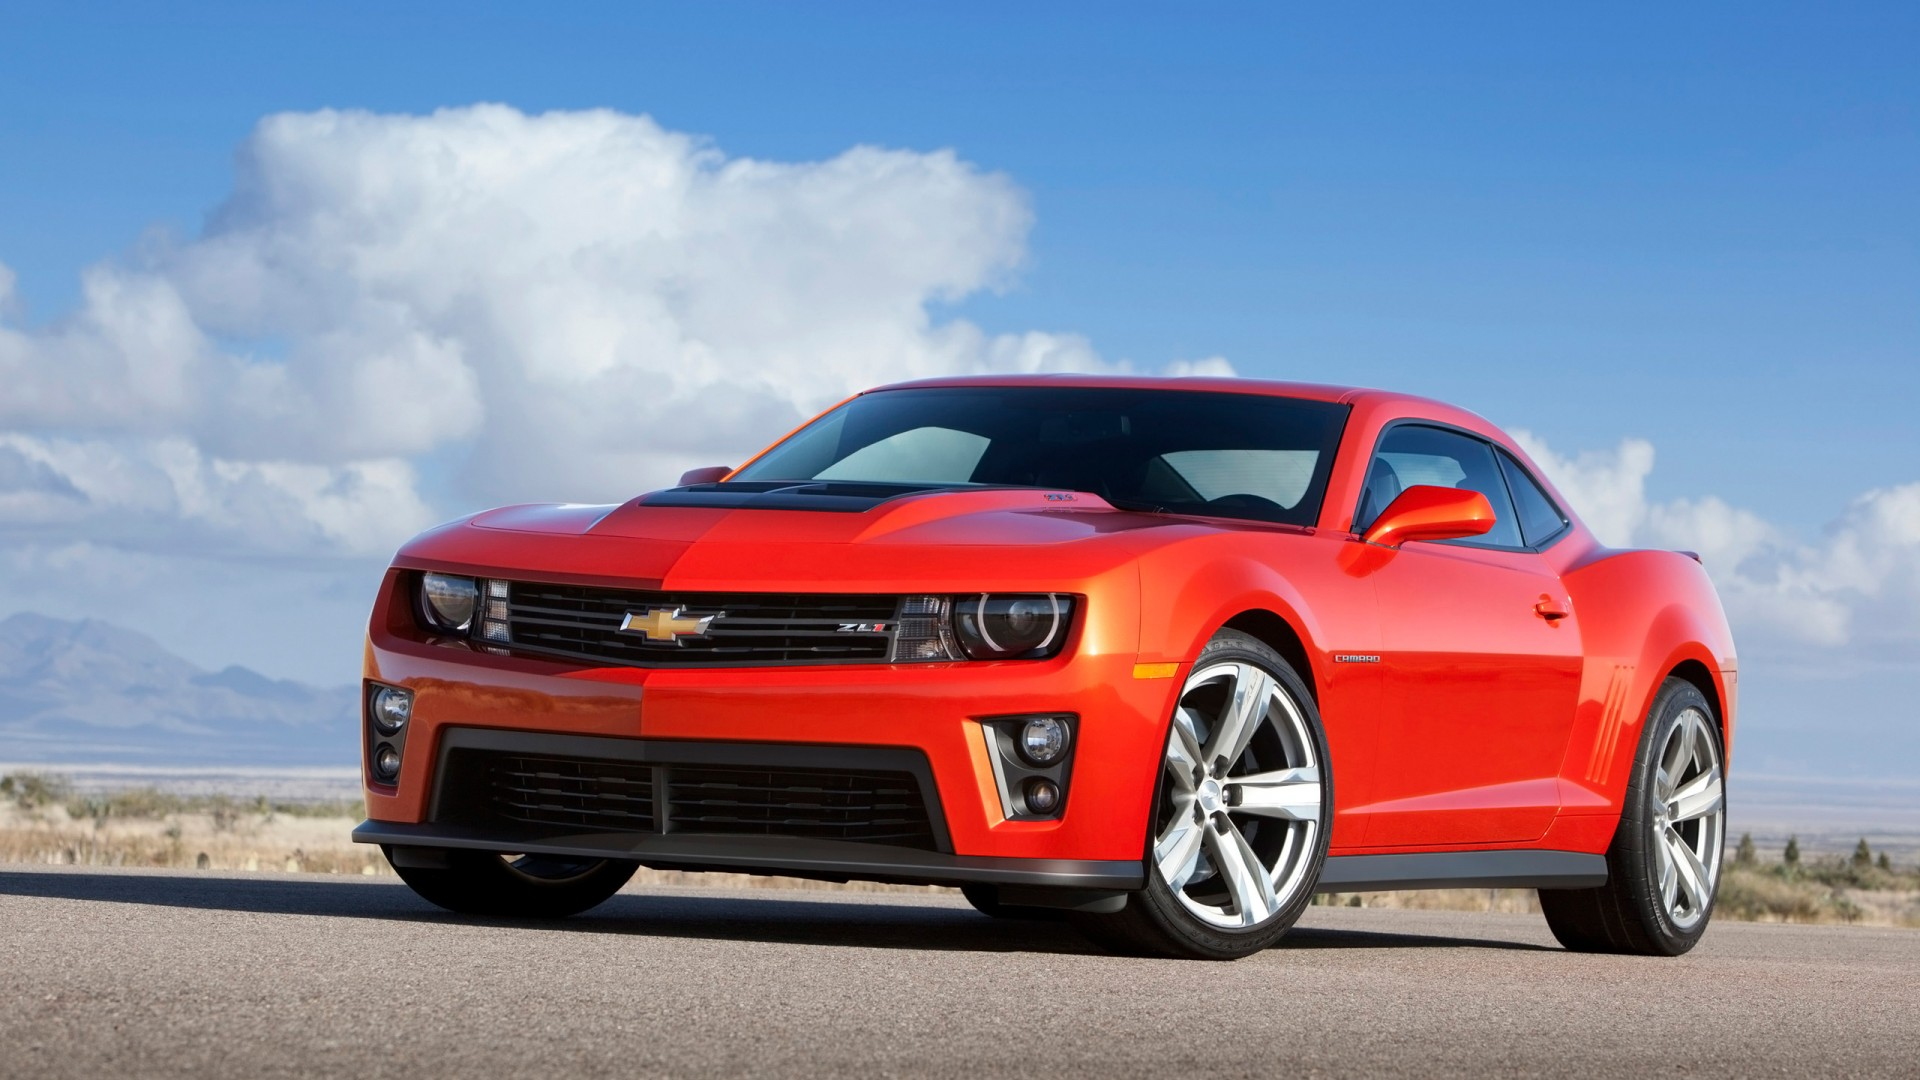 Camaro Zl1 Wallpaper Iphone 2014 Chevrolet Camaro Zl1 Coupe Wallpaper Hd Car